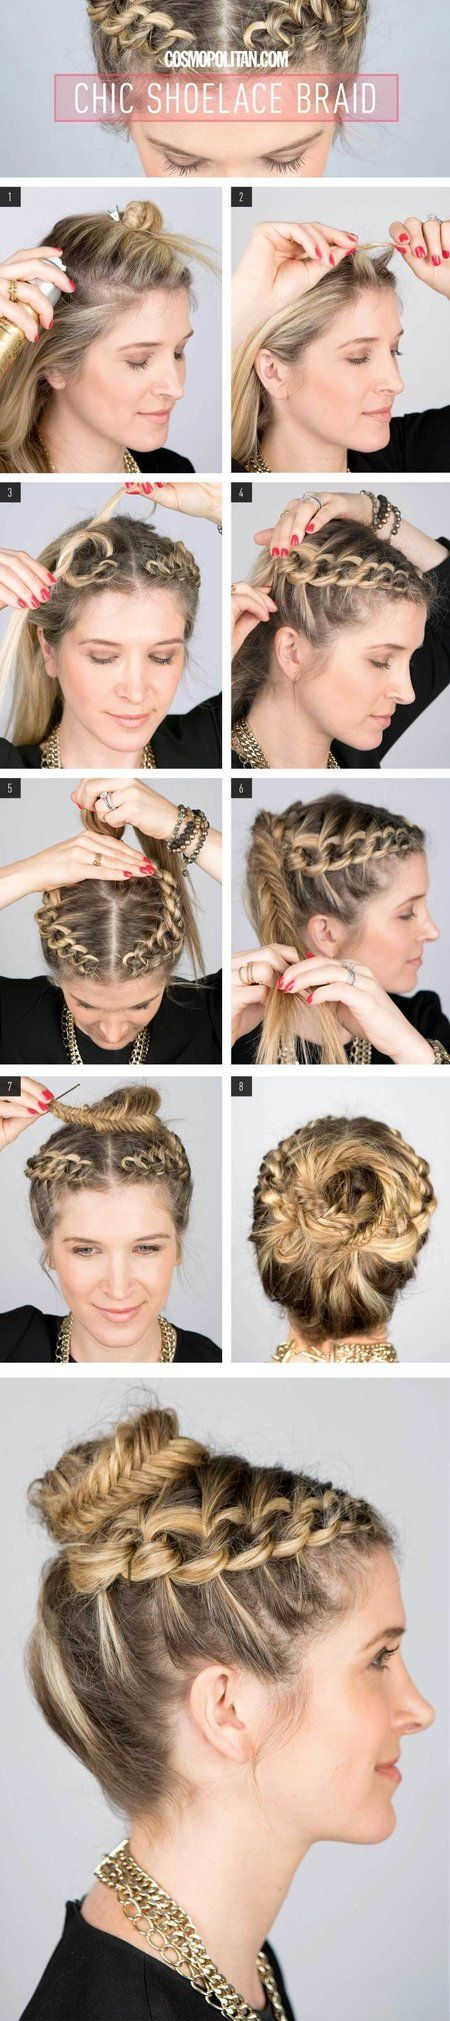 Best Braid Tutorial #cosmopolitan #hairhowto #easystyle